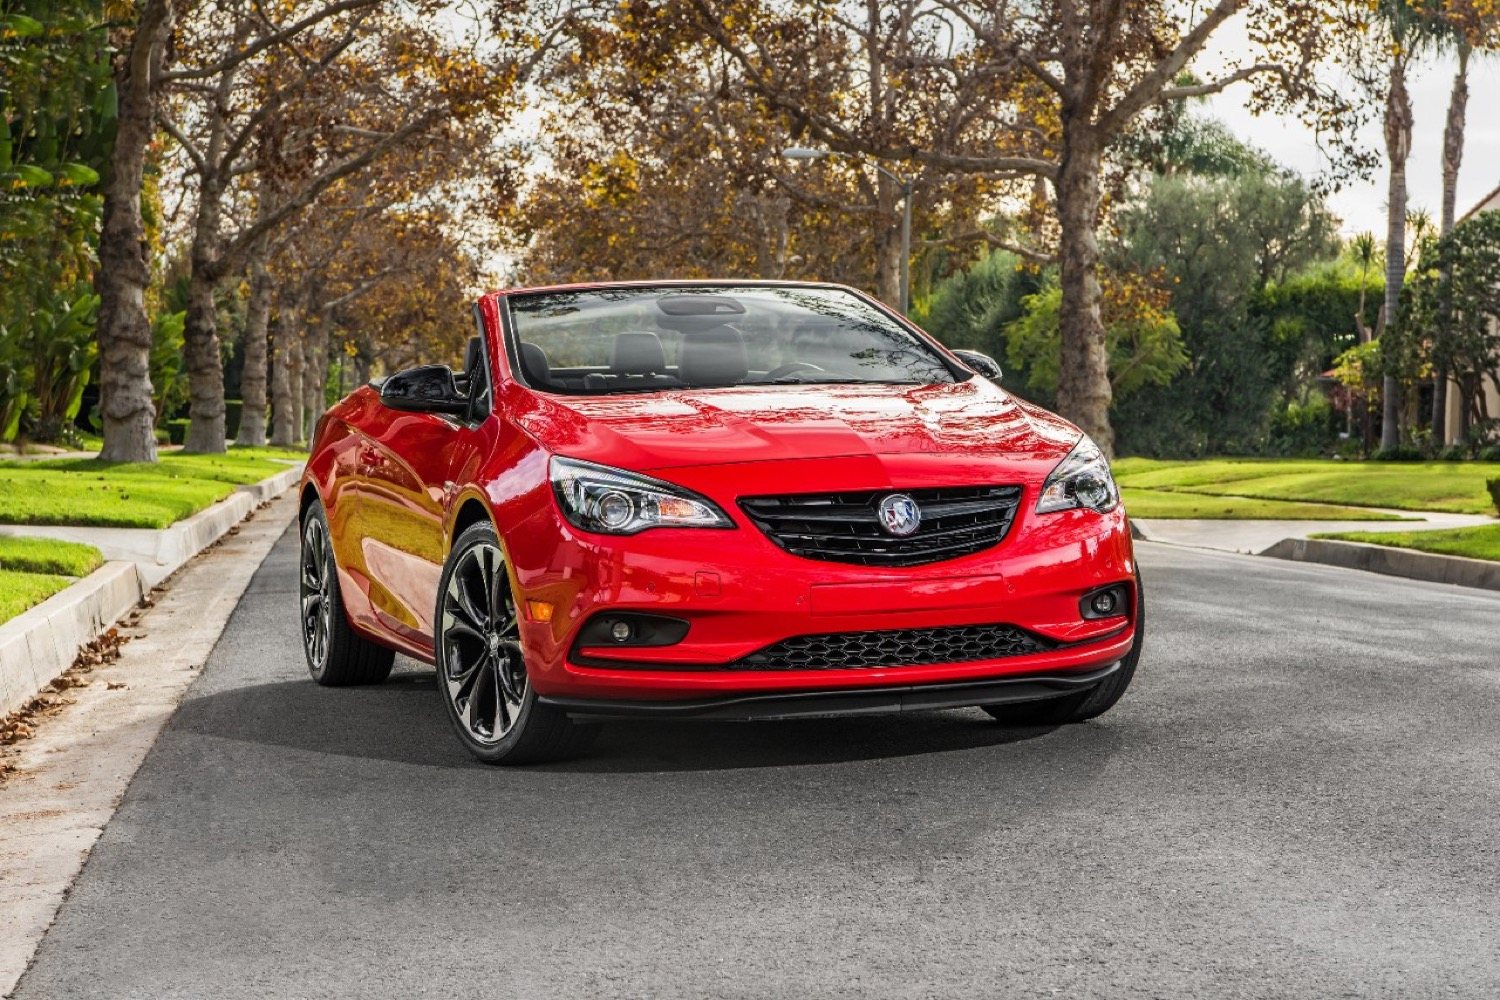 Buick Cascada Discount Cuts Price 16 Percent September 2019 2021 Buick Cascada Lease Deals, Engine, Exterior Colors